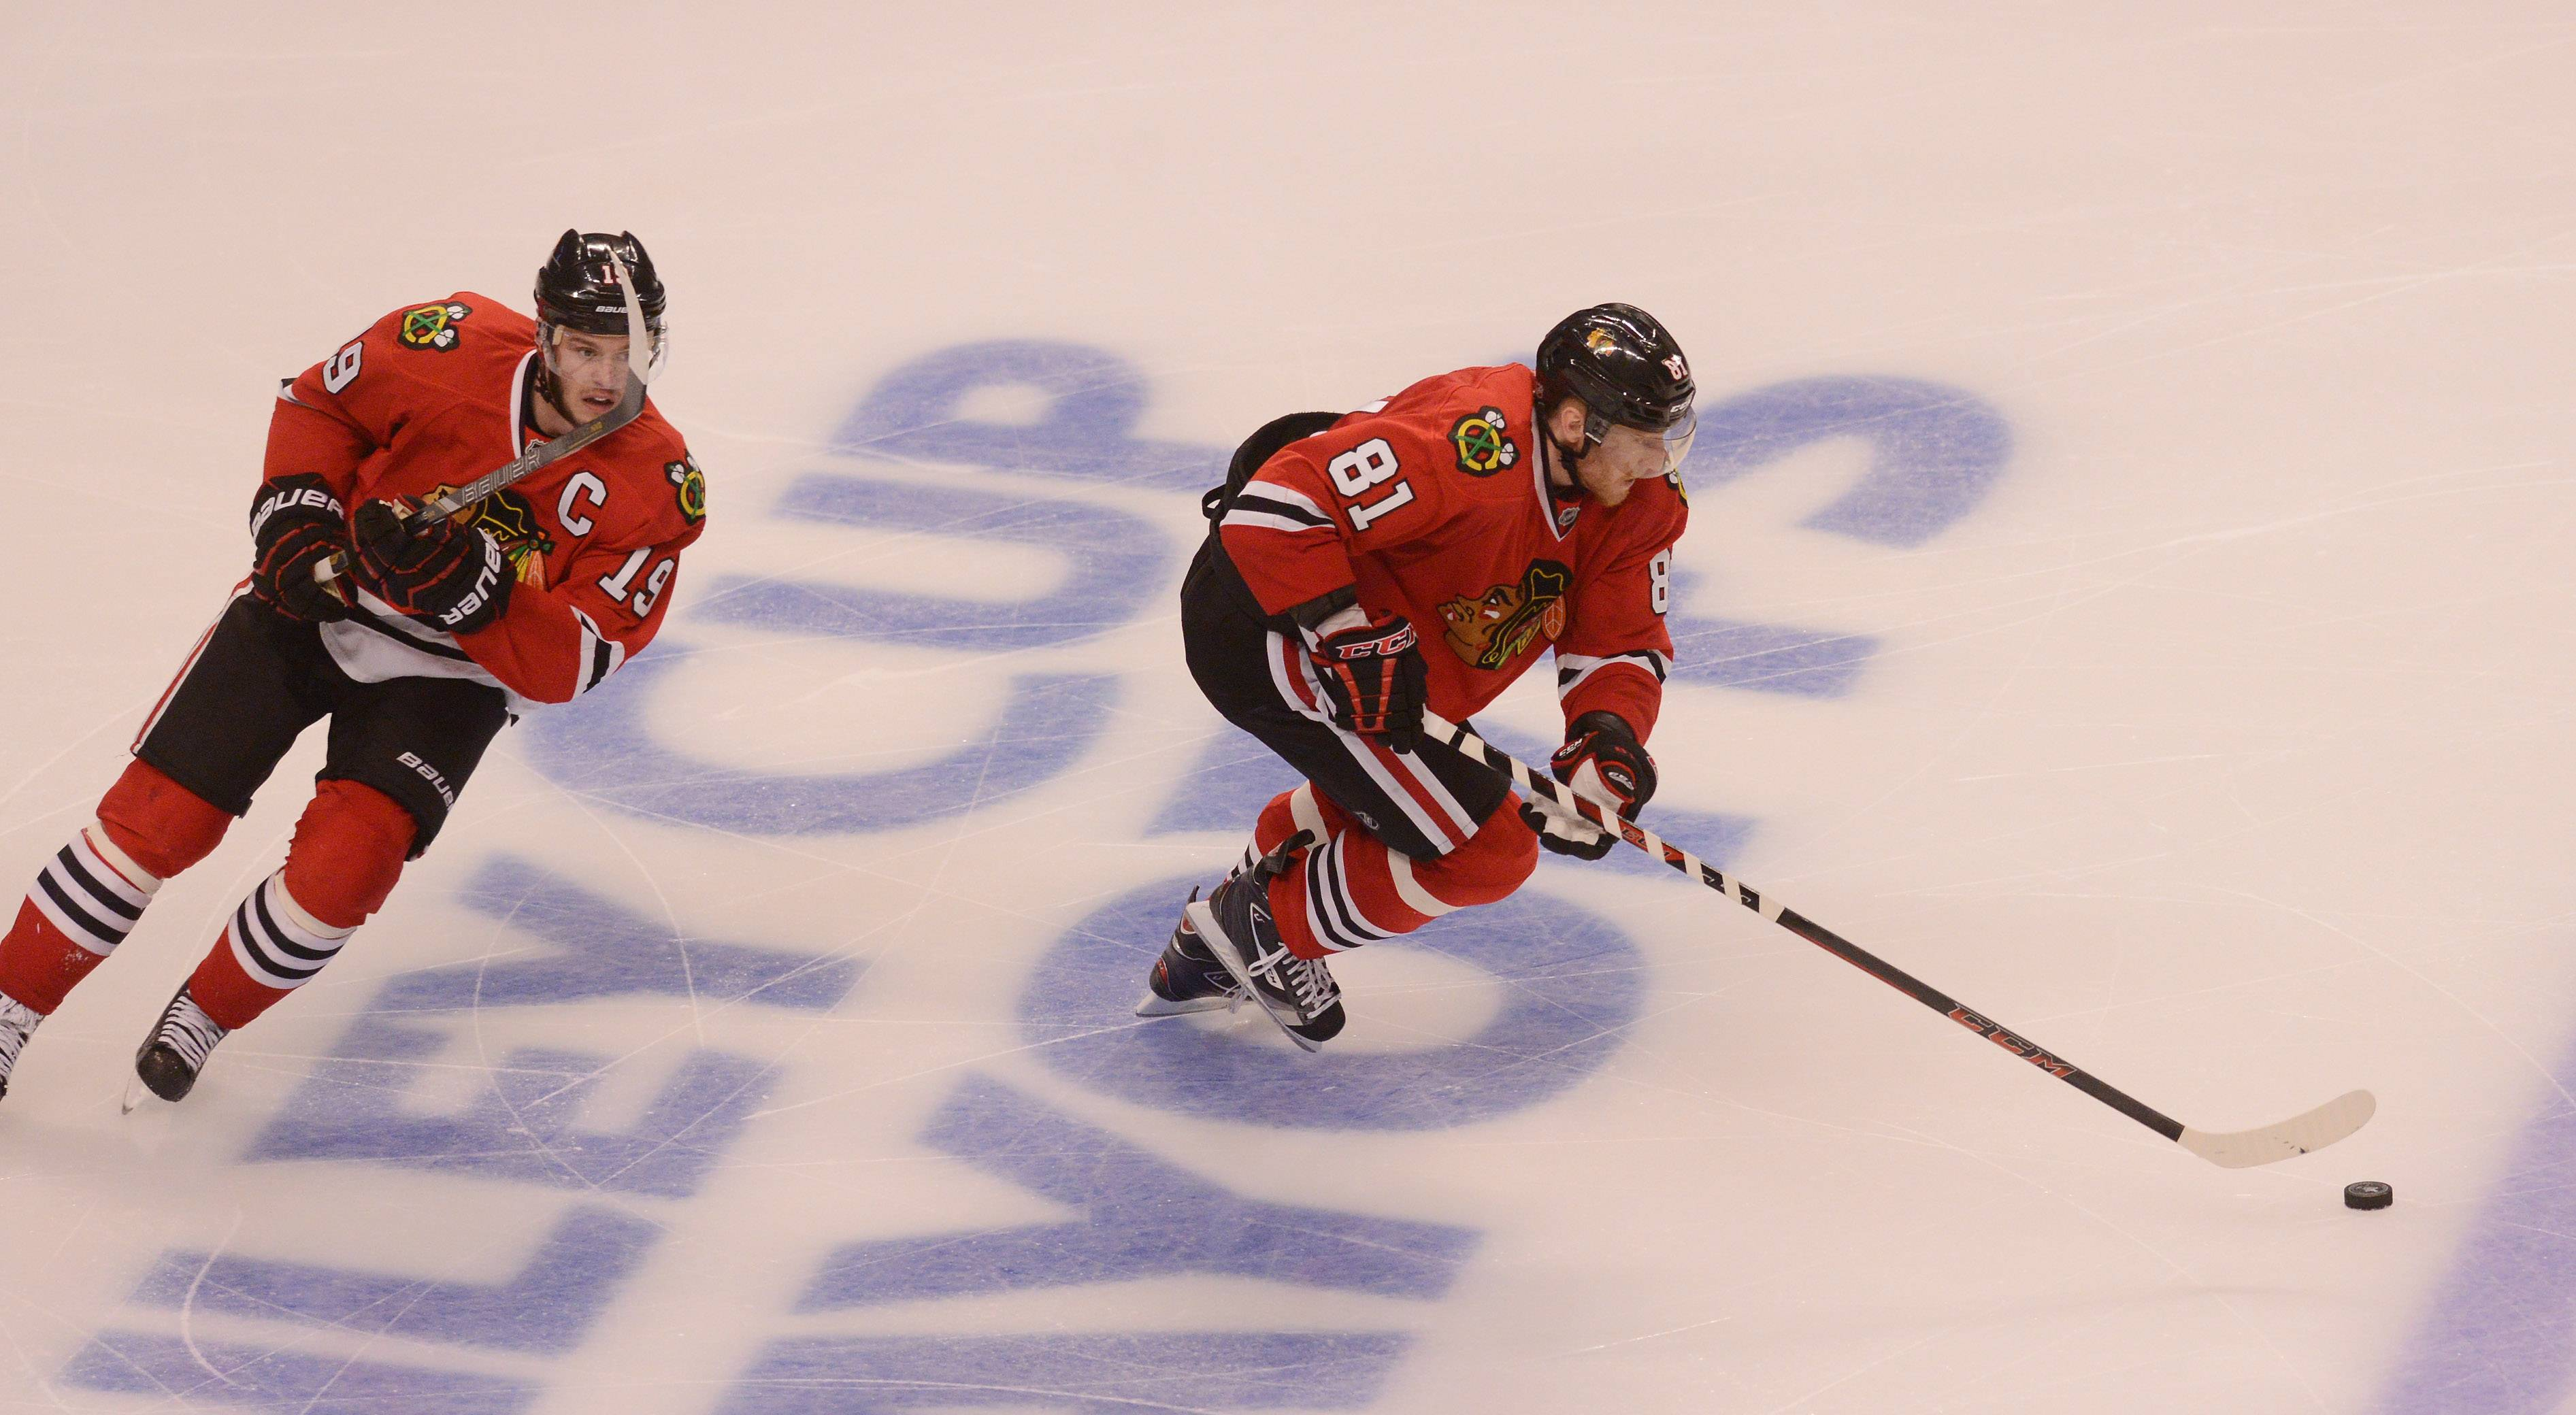 Now that they made it through Game 5, Jonathan Toews (left), Marian Hossa and the rest of the Blackhawks will do everything they can Friday night to bring the Western Conference finals back to the United Center for a Game 7 on Sunday night.